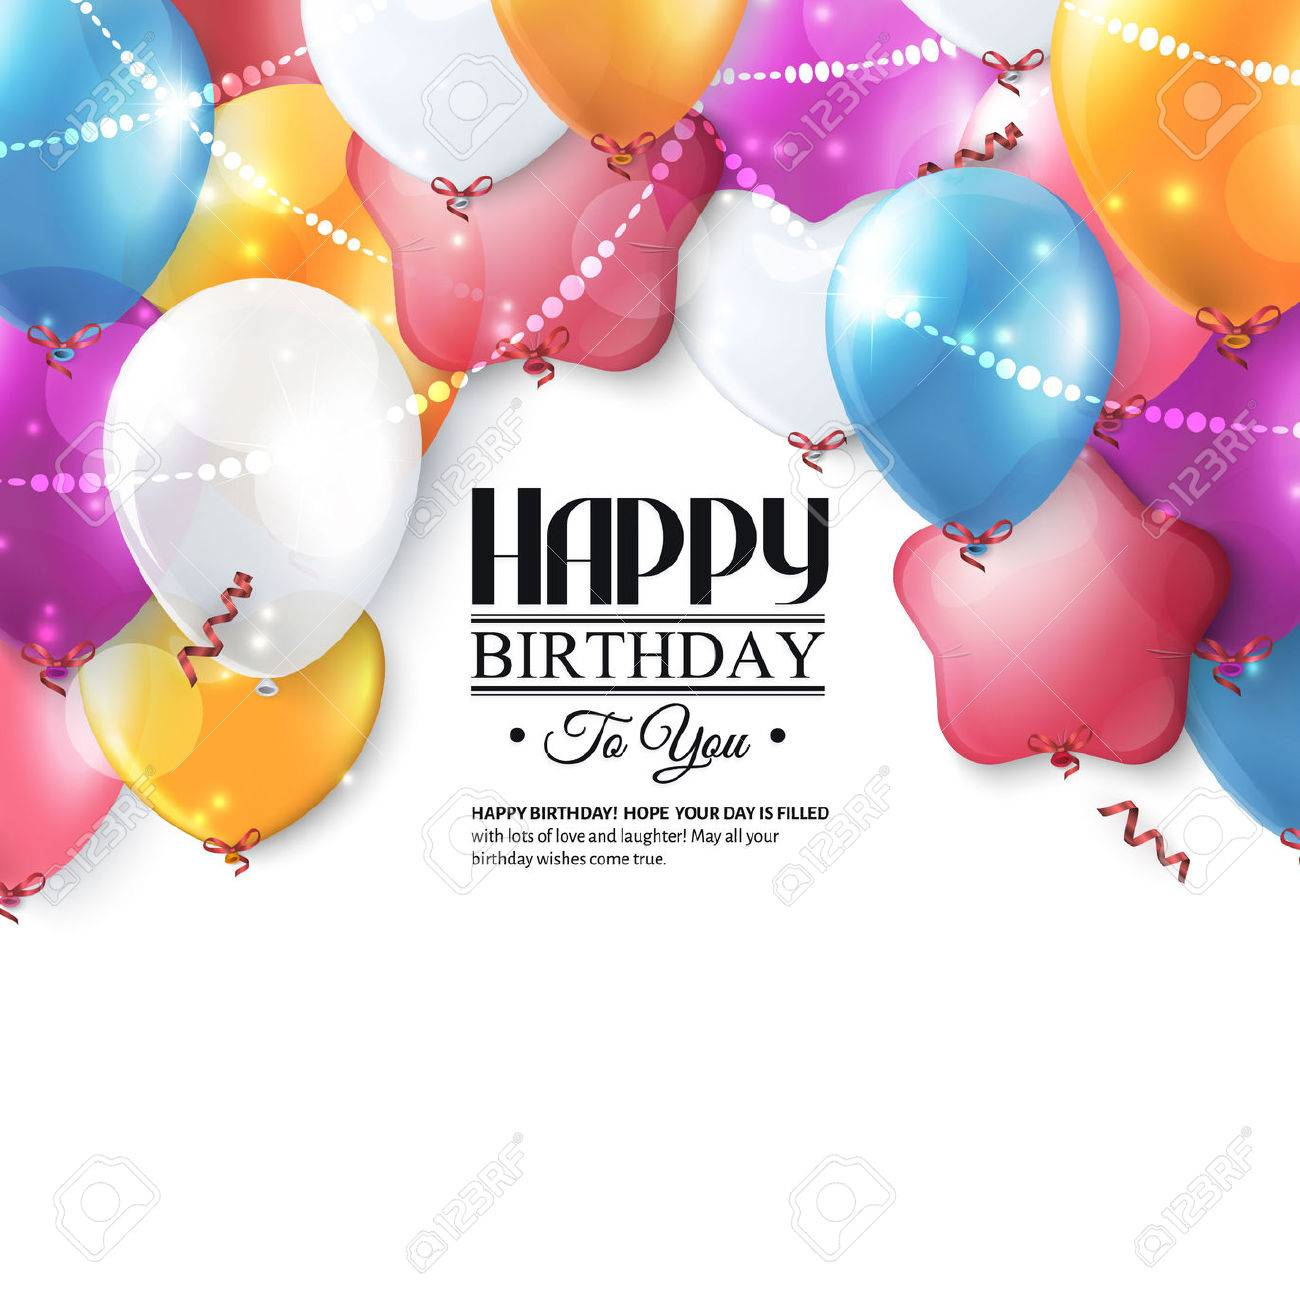 Birthday card with colorful balloons and confetti. - 35090488